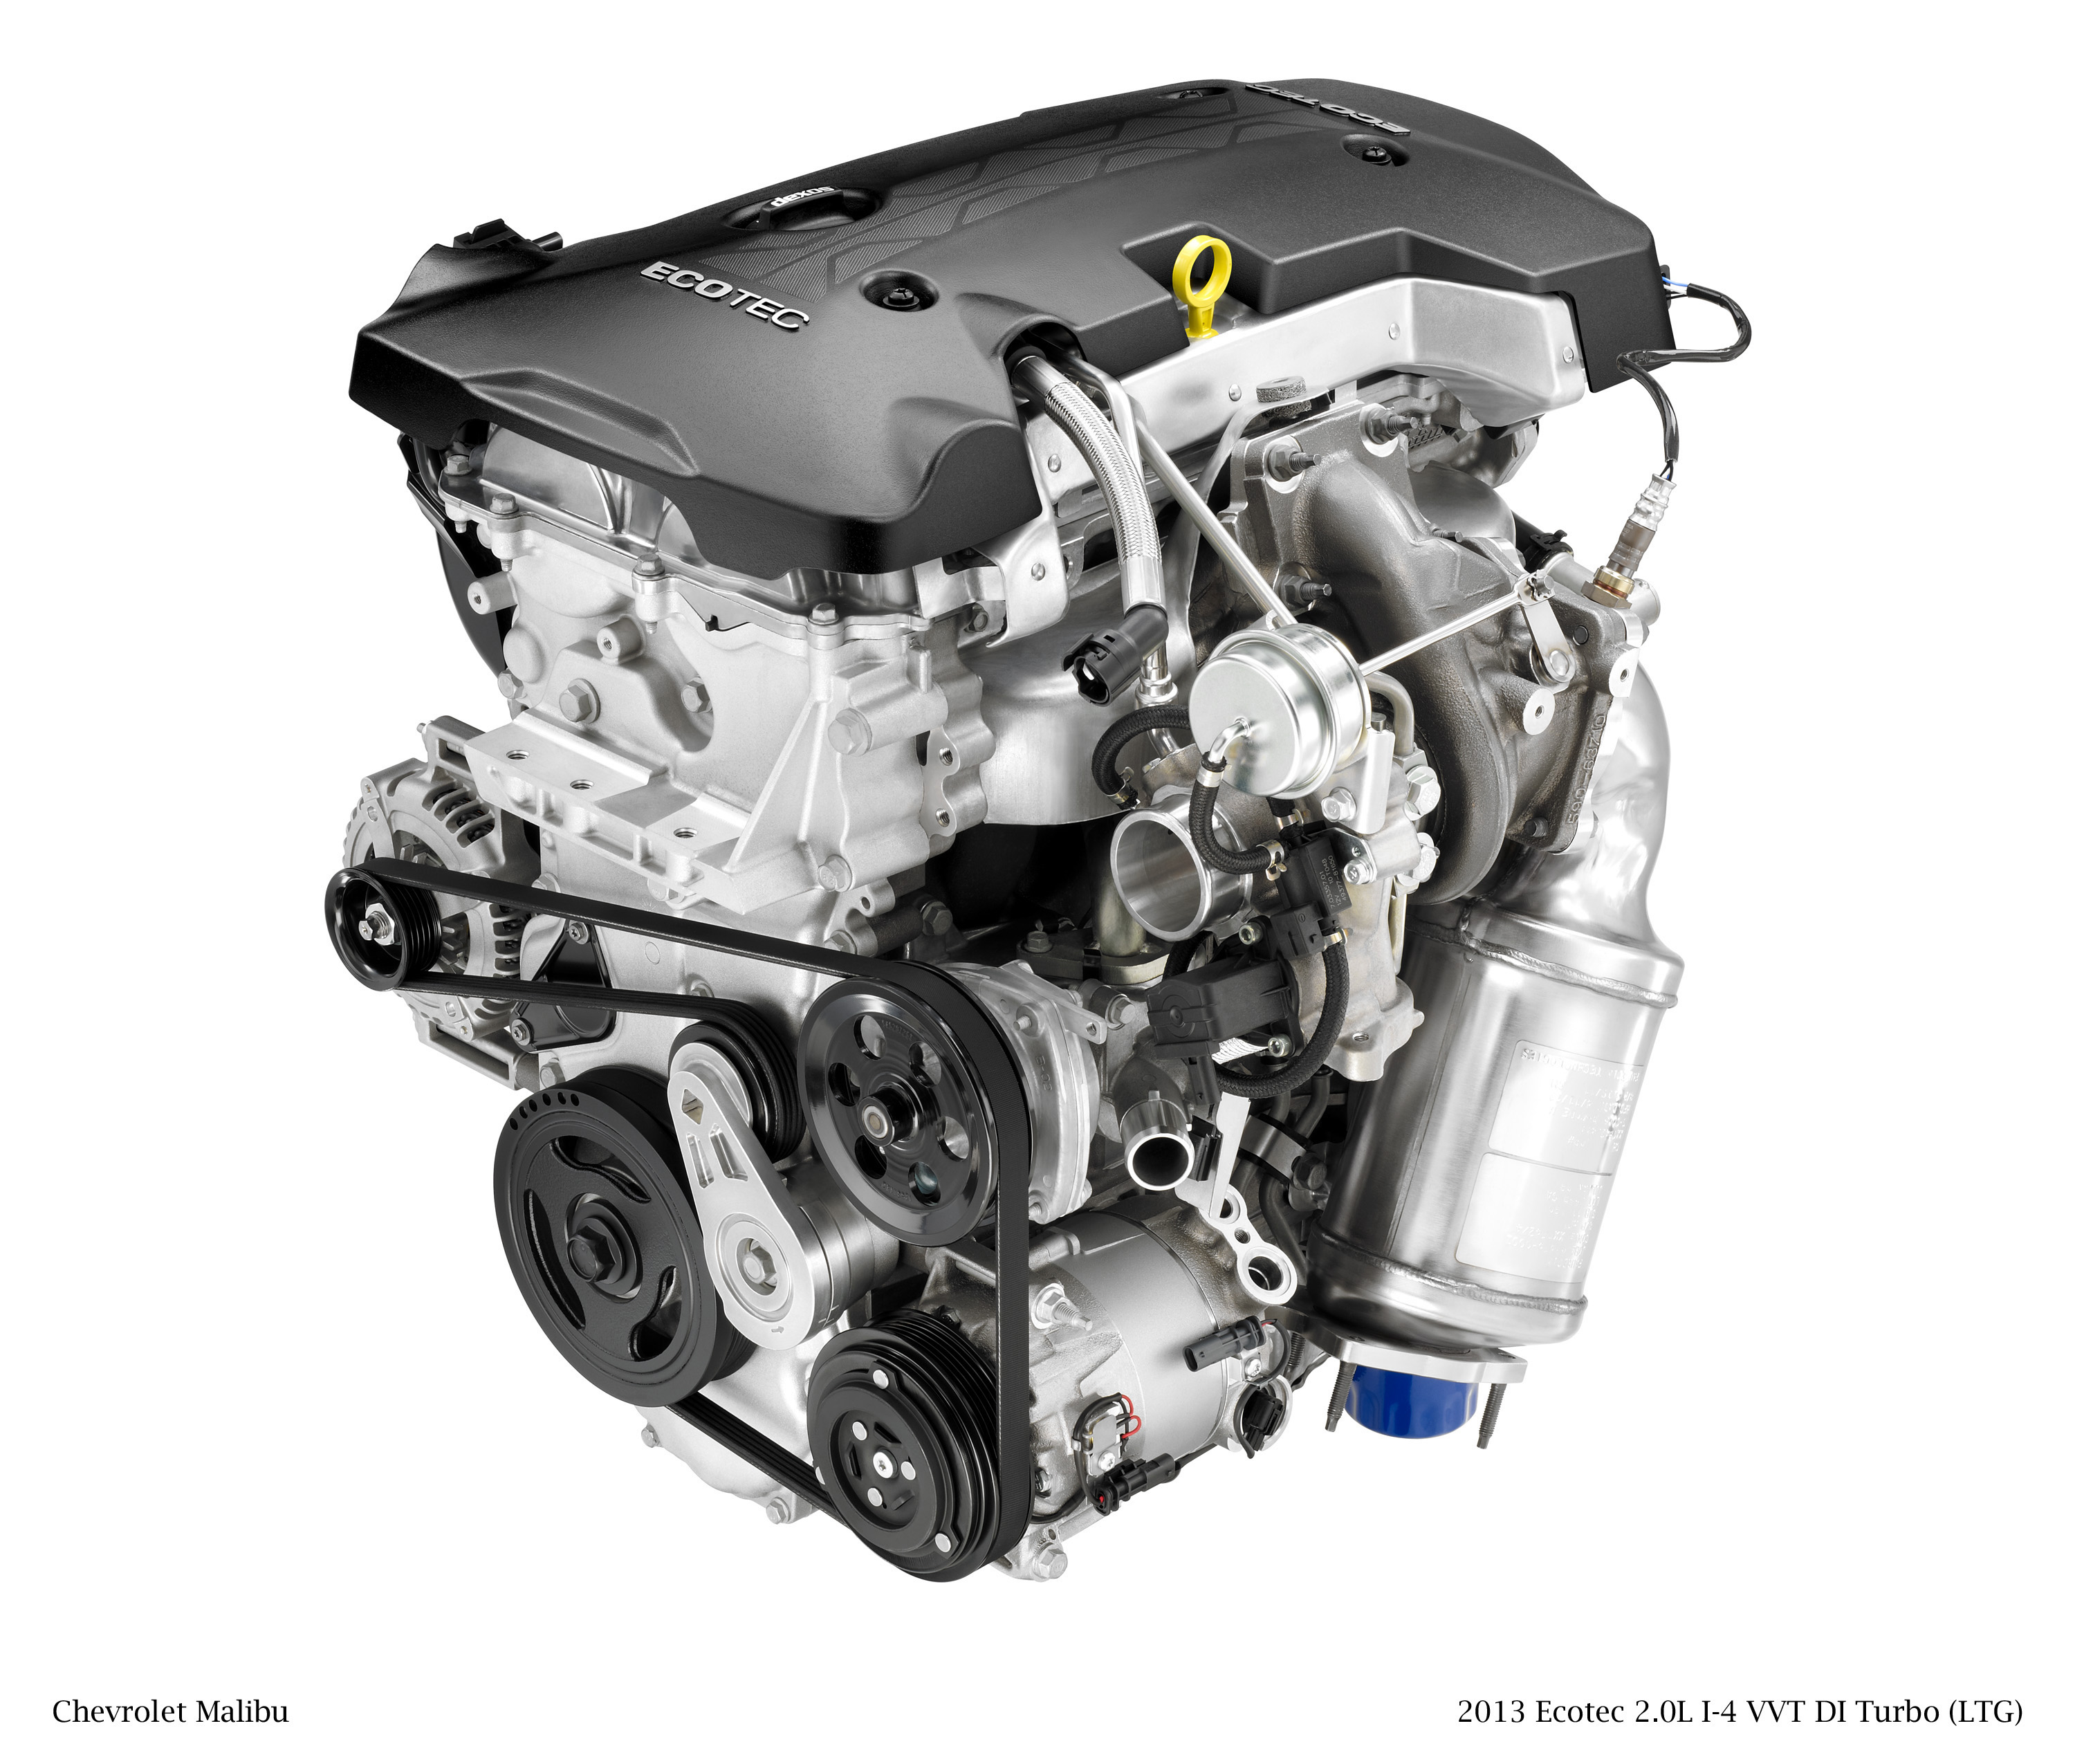 New 20l Turbo Engine Gives The 2013 Chevrolet Malibu Enhanced Spark Origin Performance And Refinement